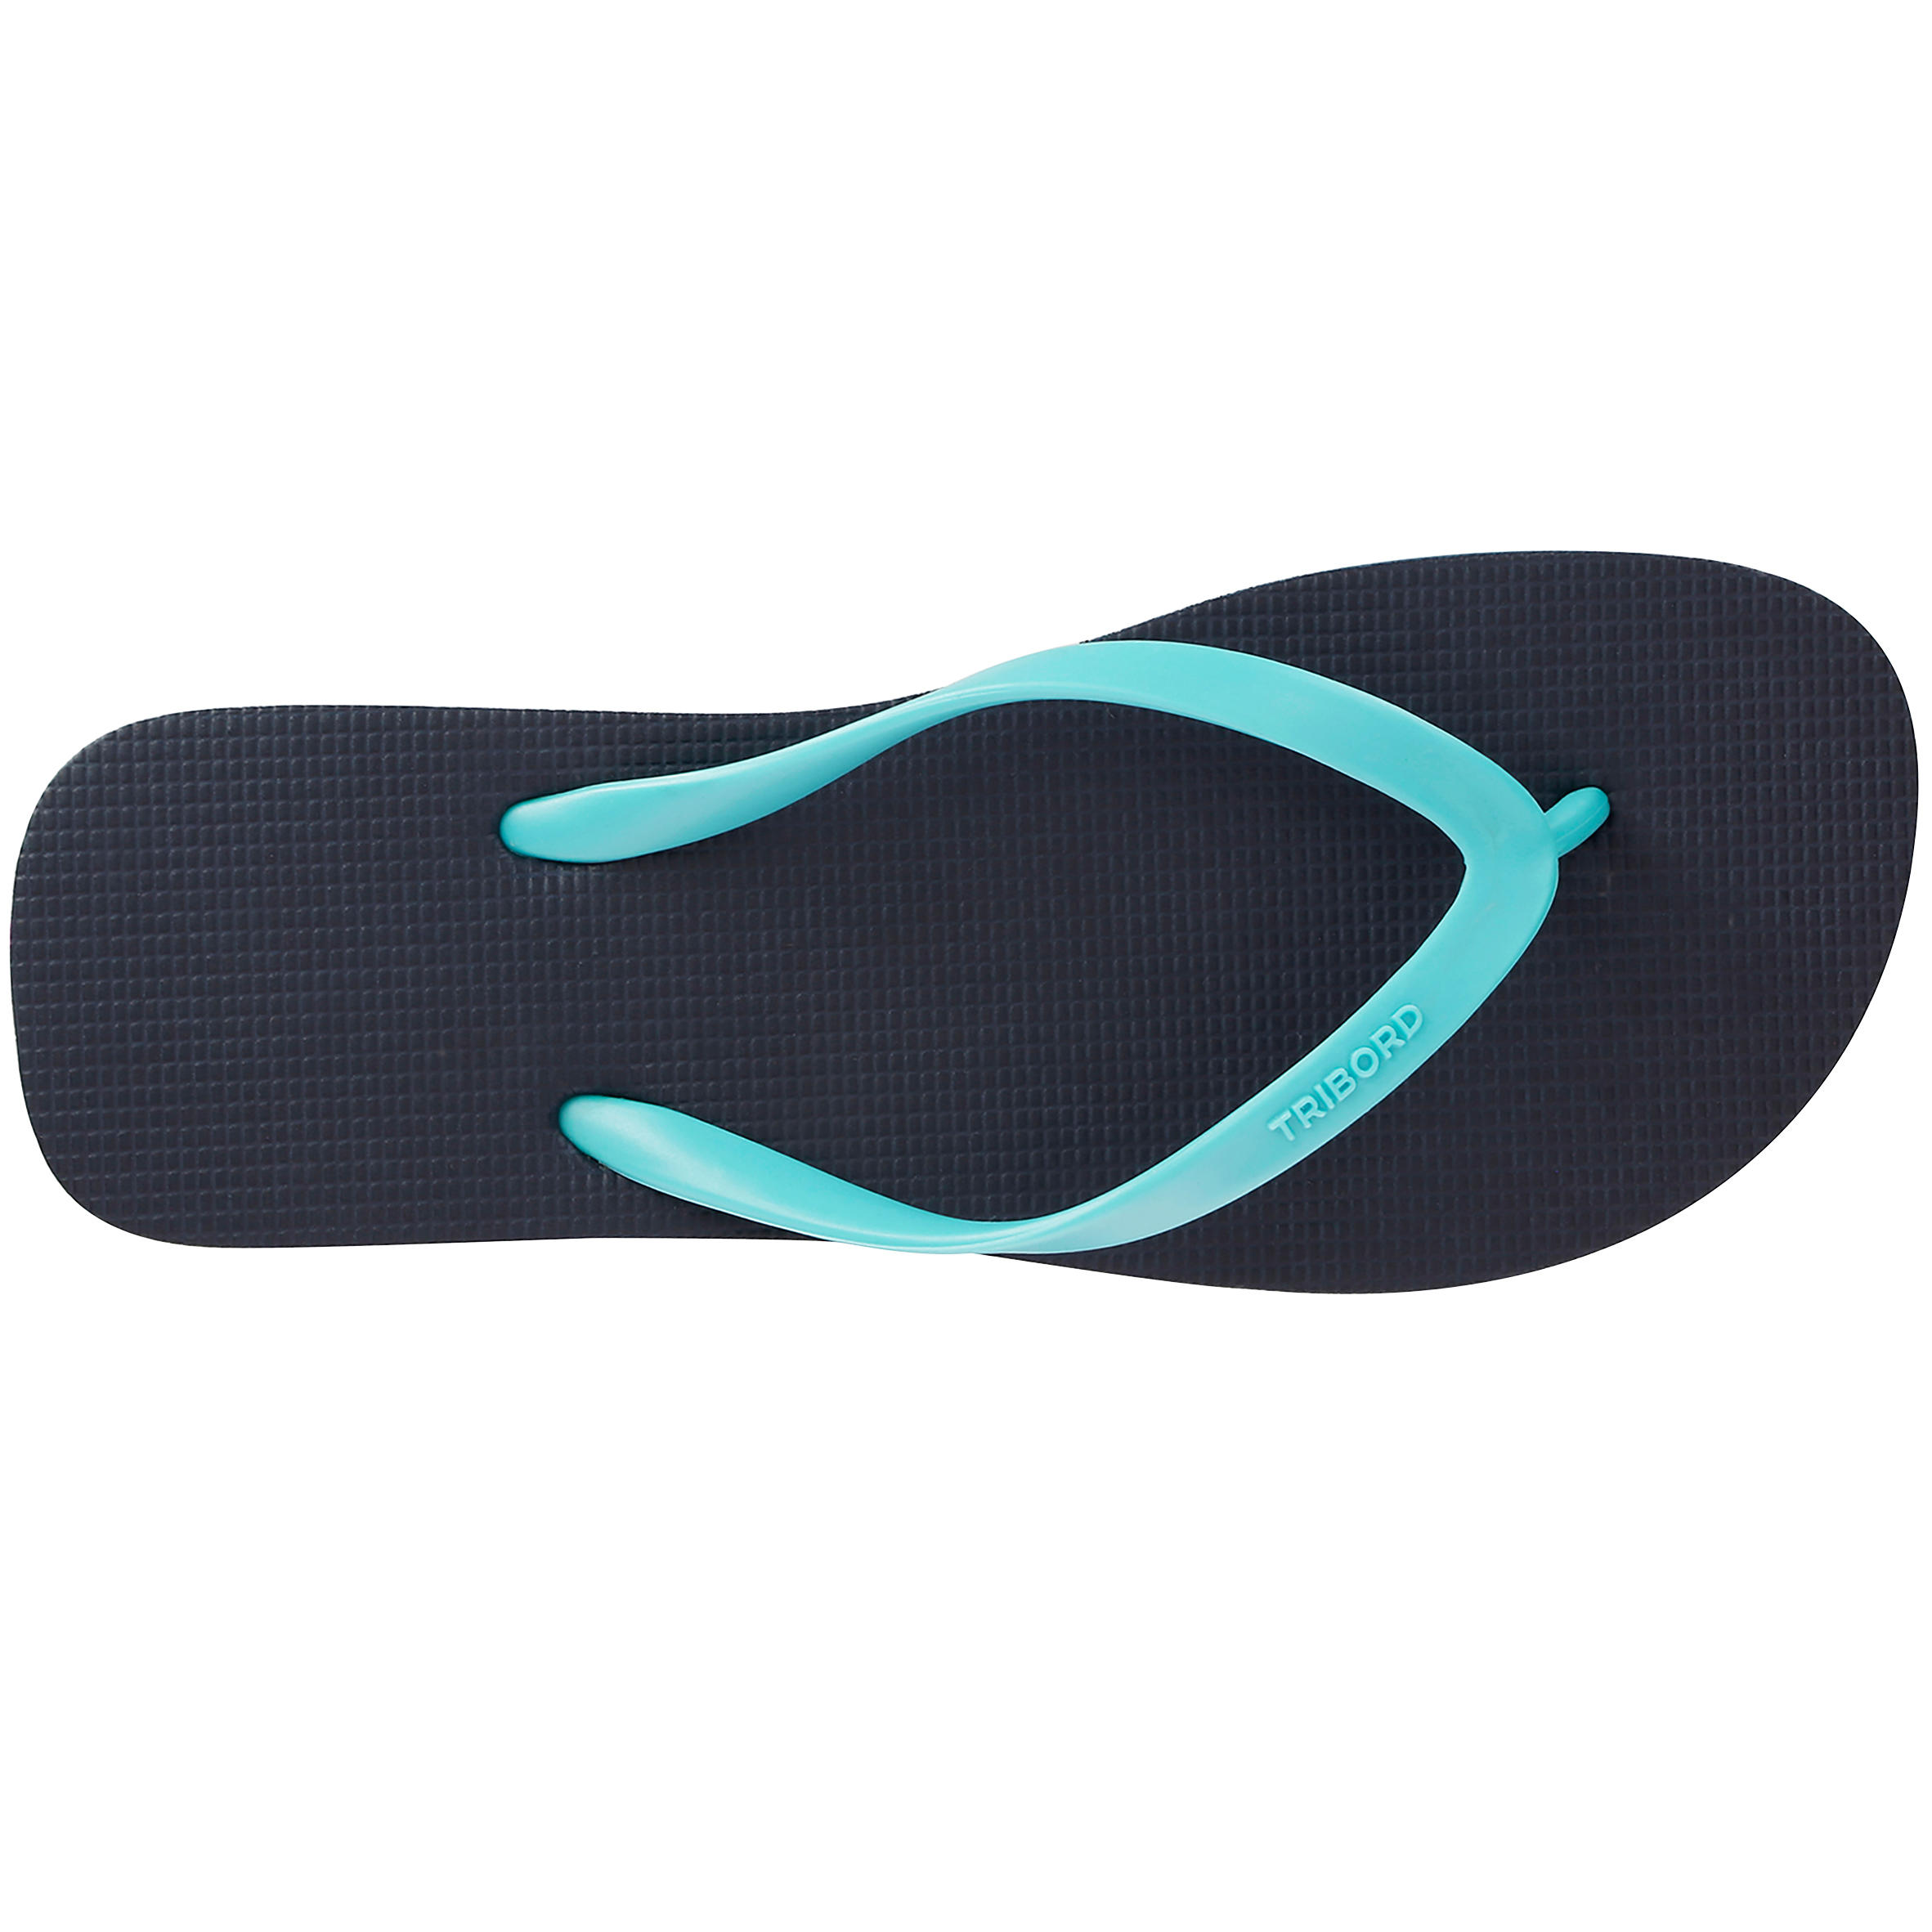 Women's Flip-Flops TO 100 - Blue/Turquoise